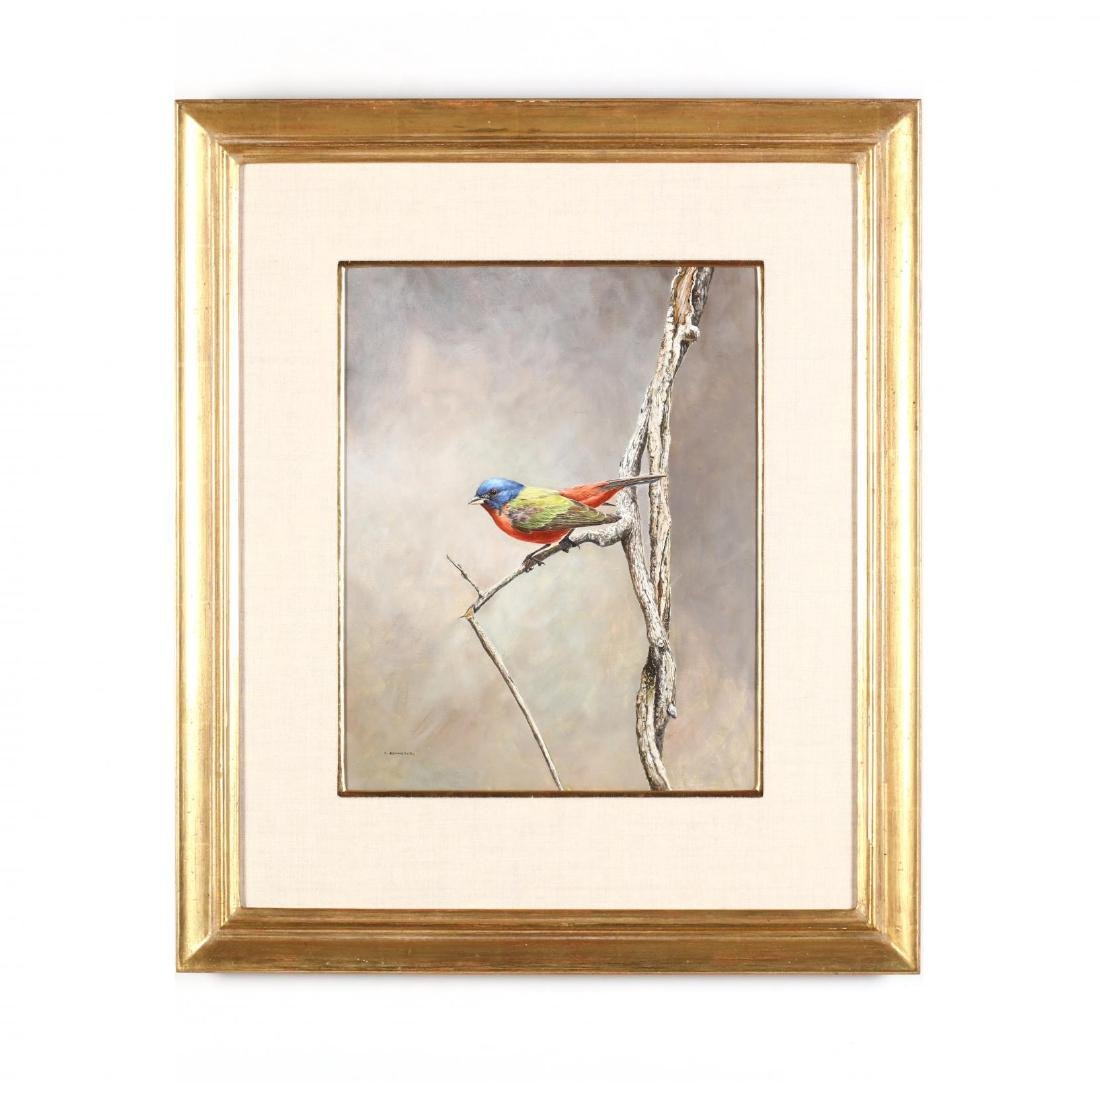 Anthony Henneberg (American, 20th c.), Painted Bunting